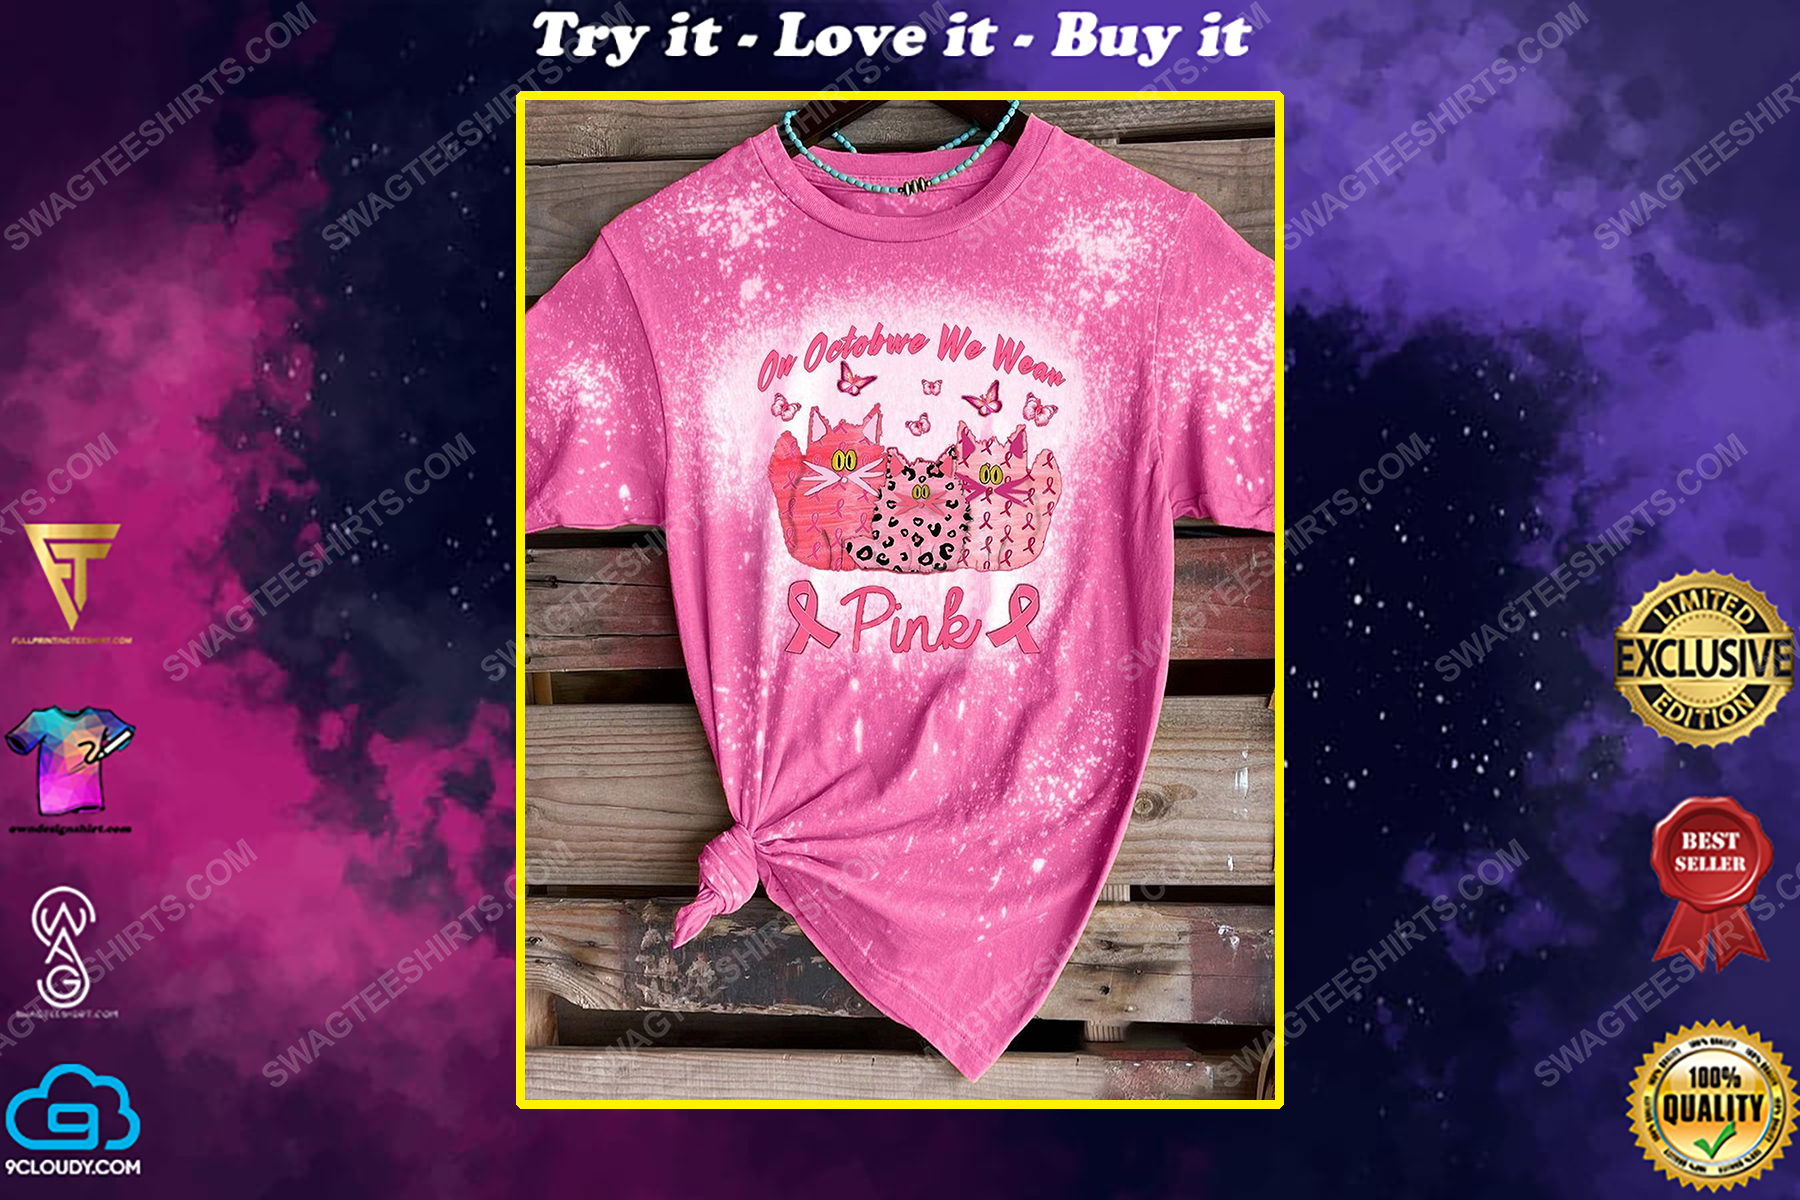 Breast cancer awareness in october we wear pink cat and butterfly bleached shirt